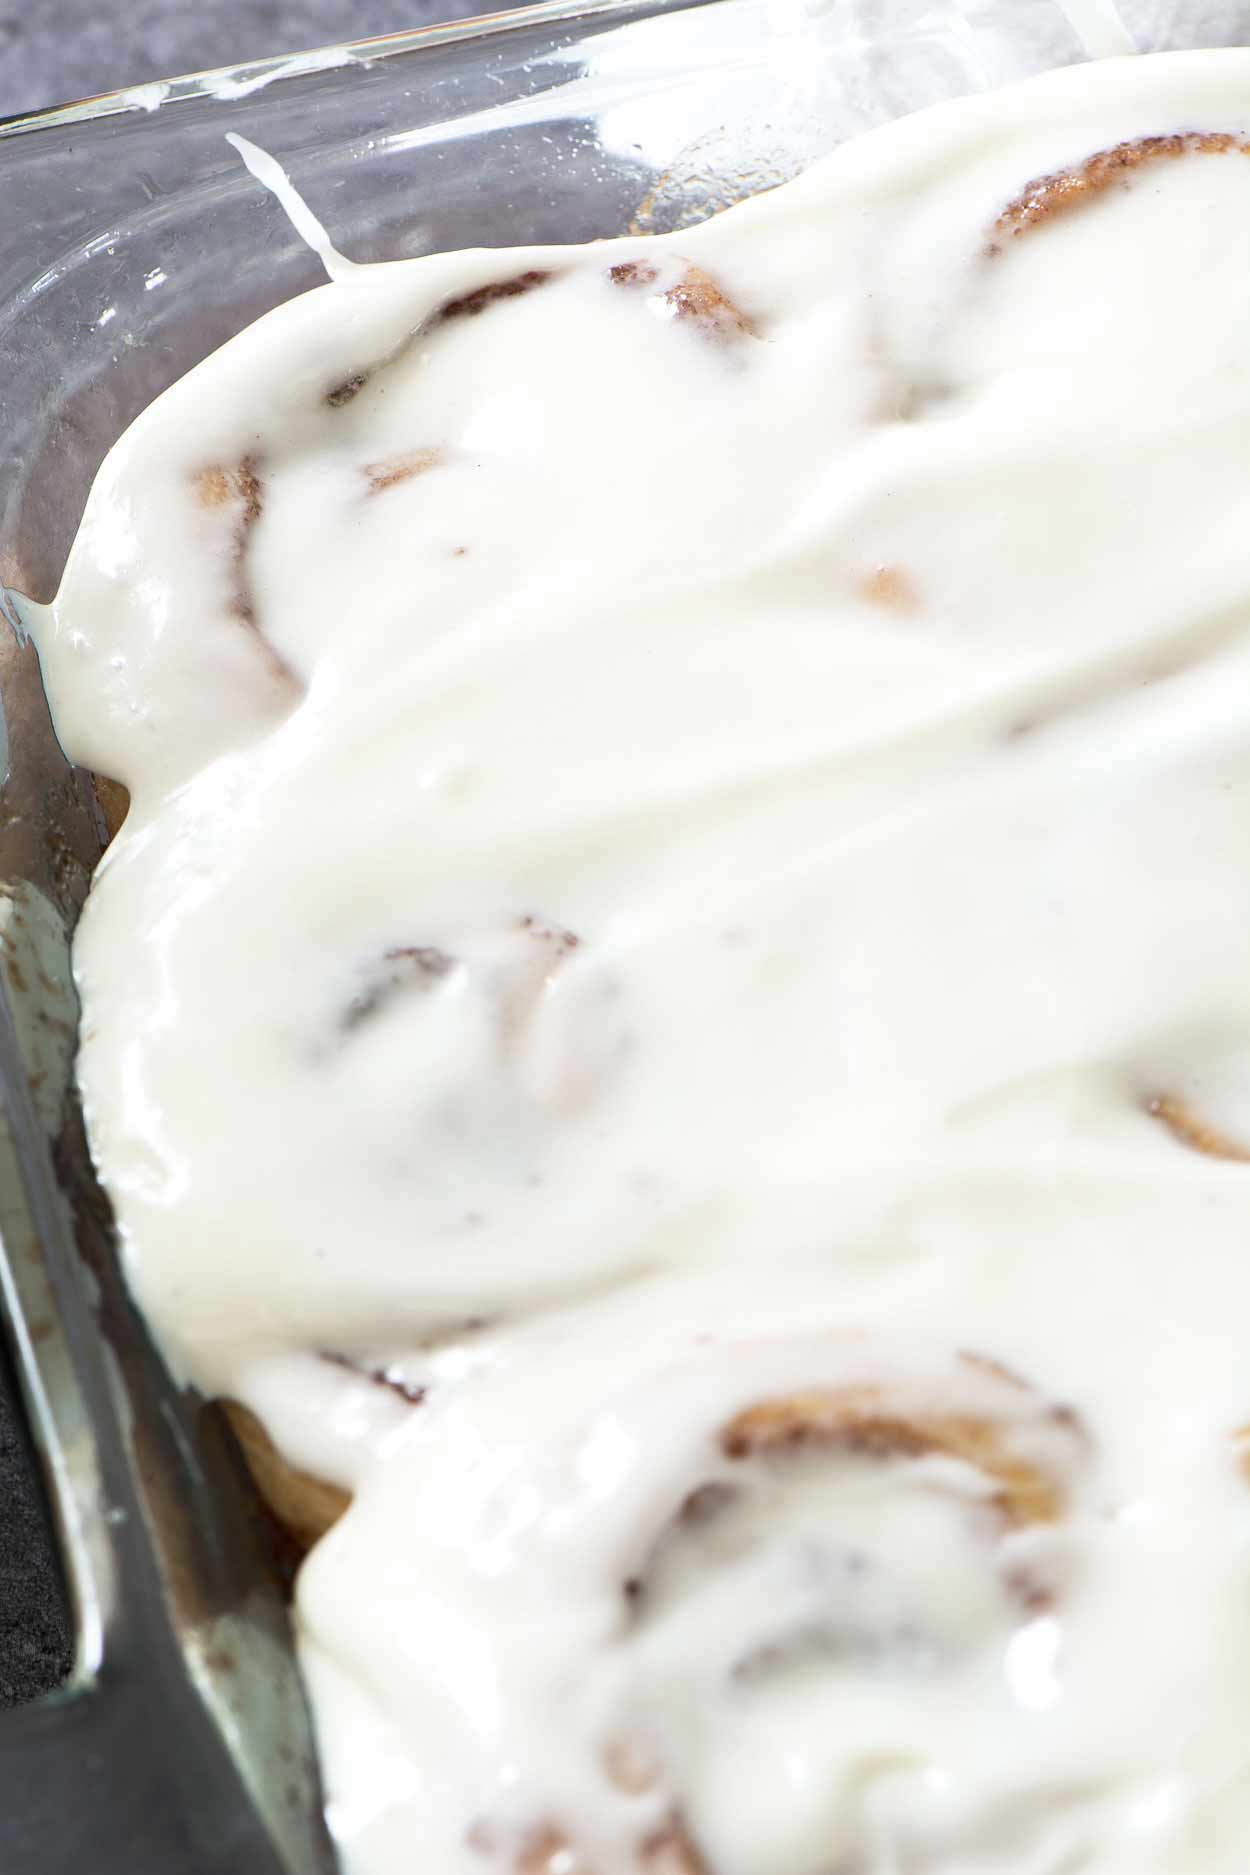 Made from scratch jumbo cinnamon rolls that are light and flaky. Filled with brown sugar, cinnamon and topped with a generous layer of cream cheese icing. | simplerevisions.com